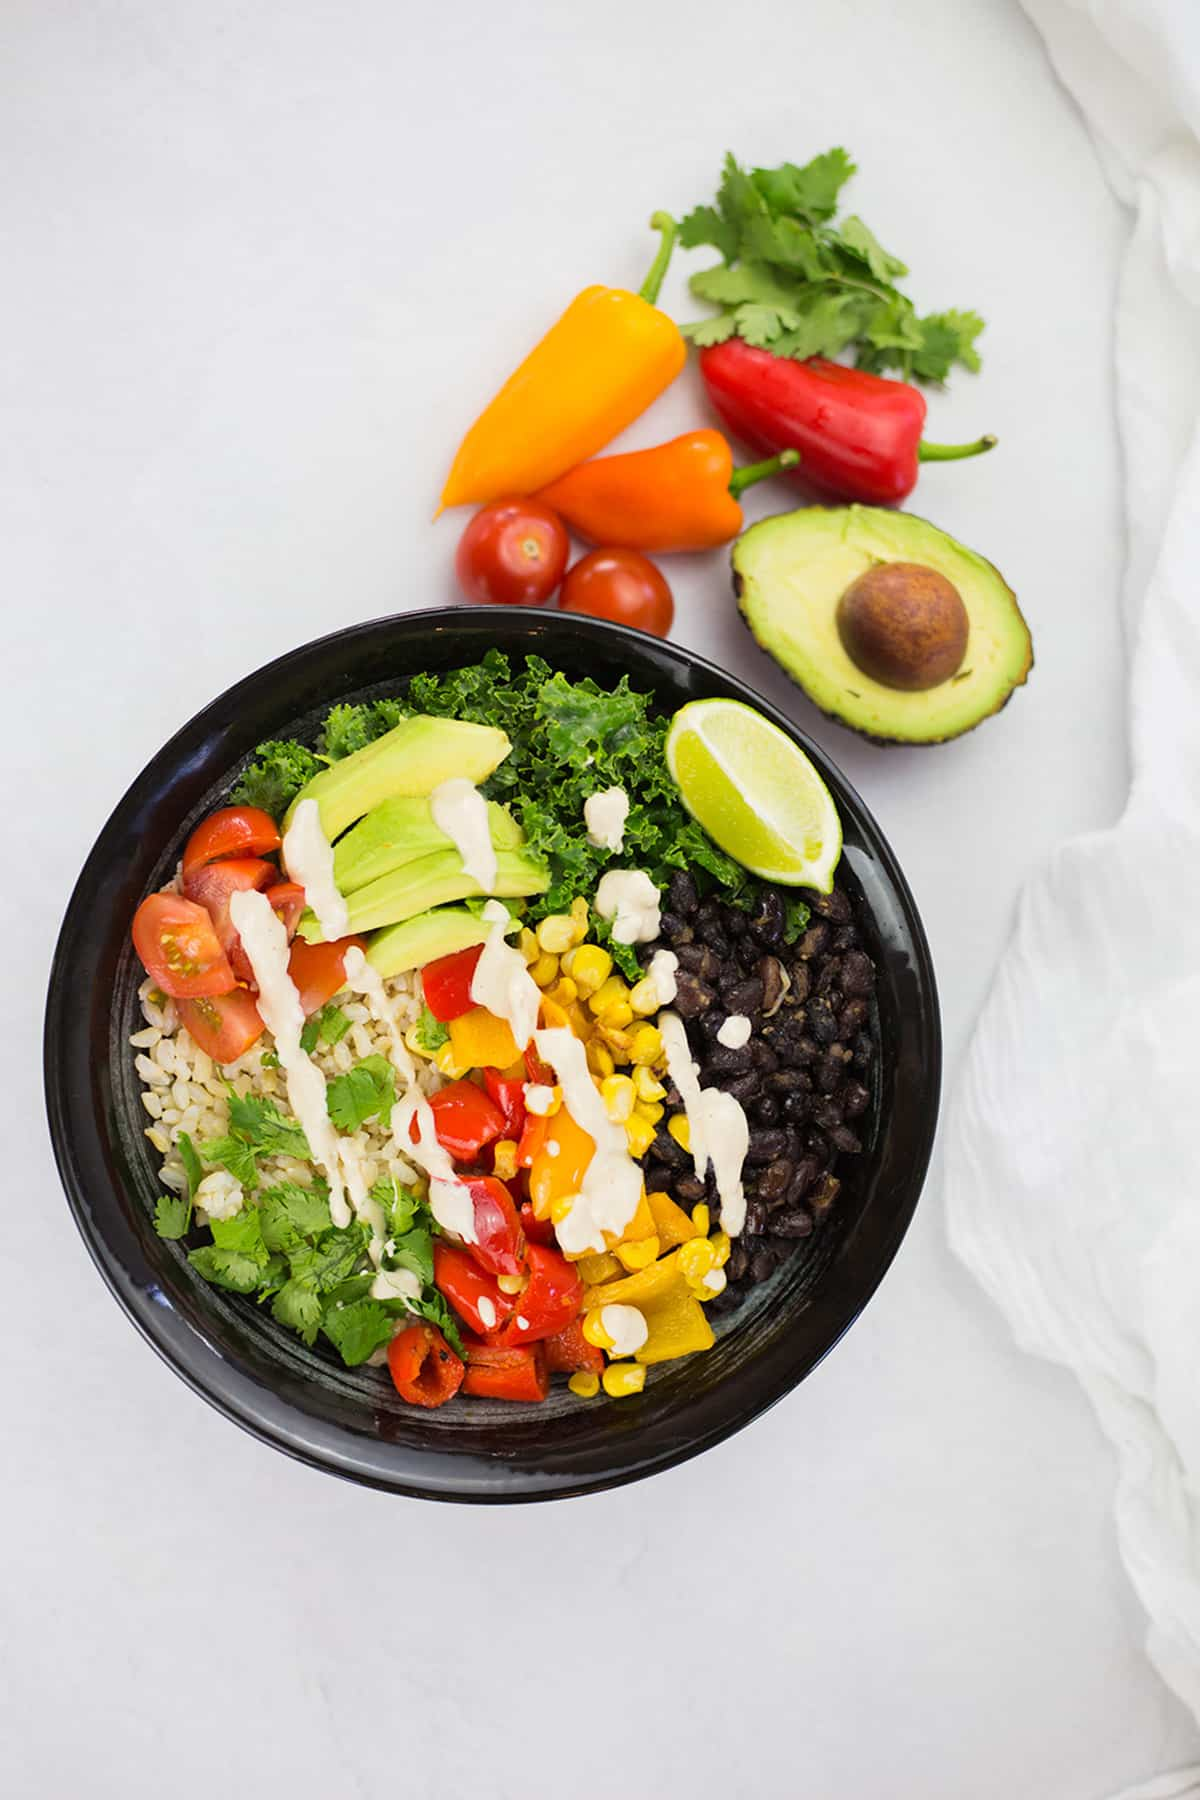 Birdseye view of vegan burrito bowl in black bowl on white background with vegetables in the background.